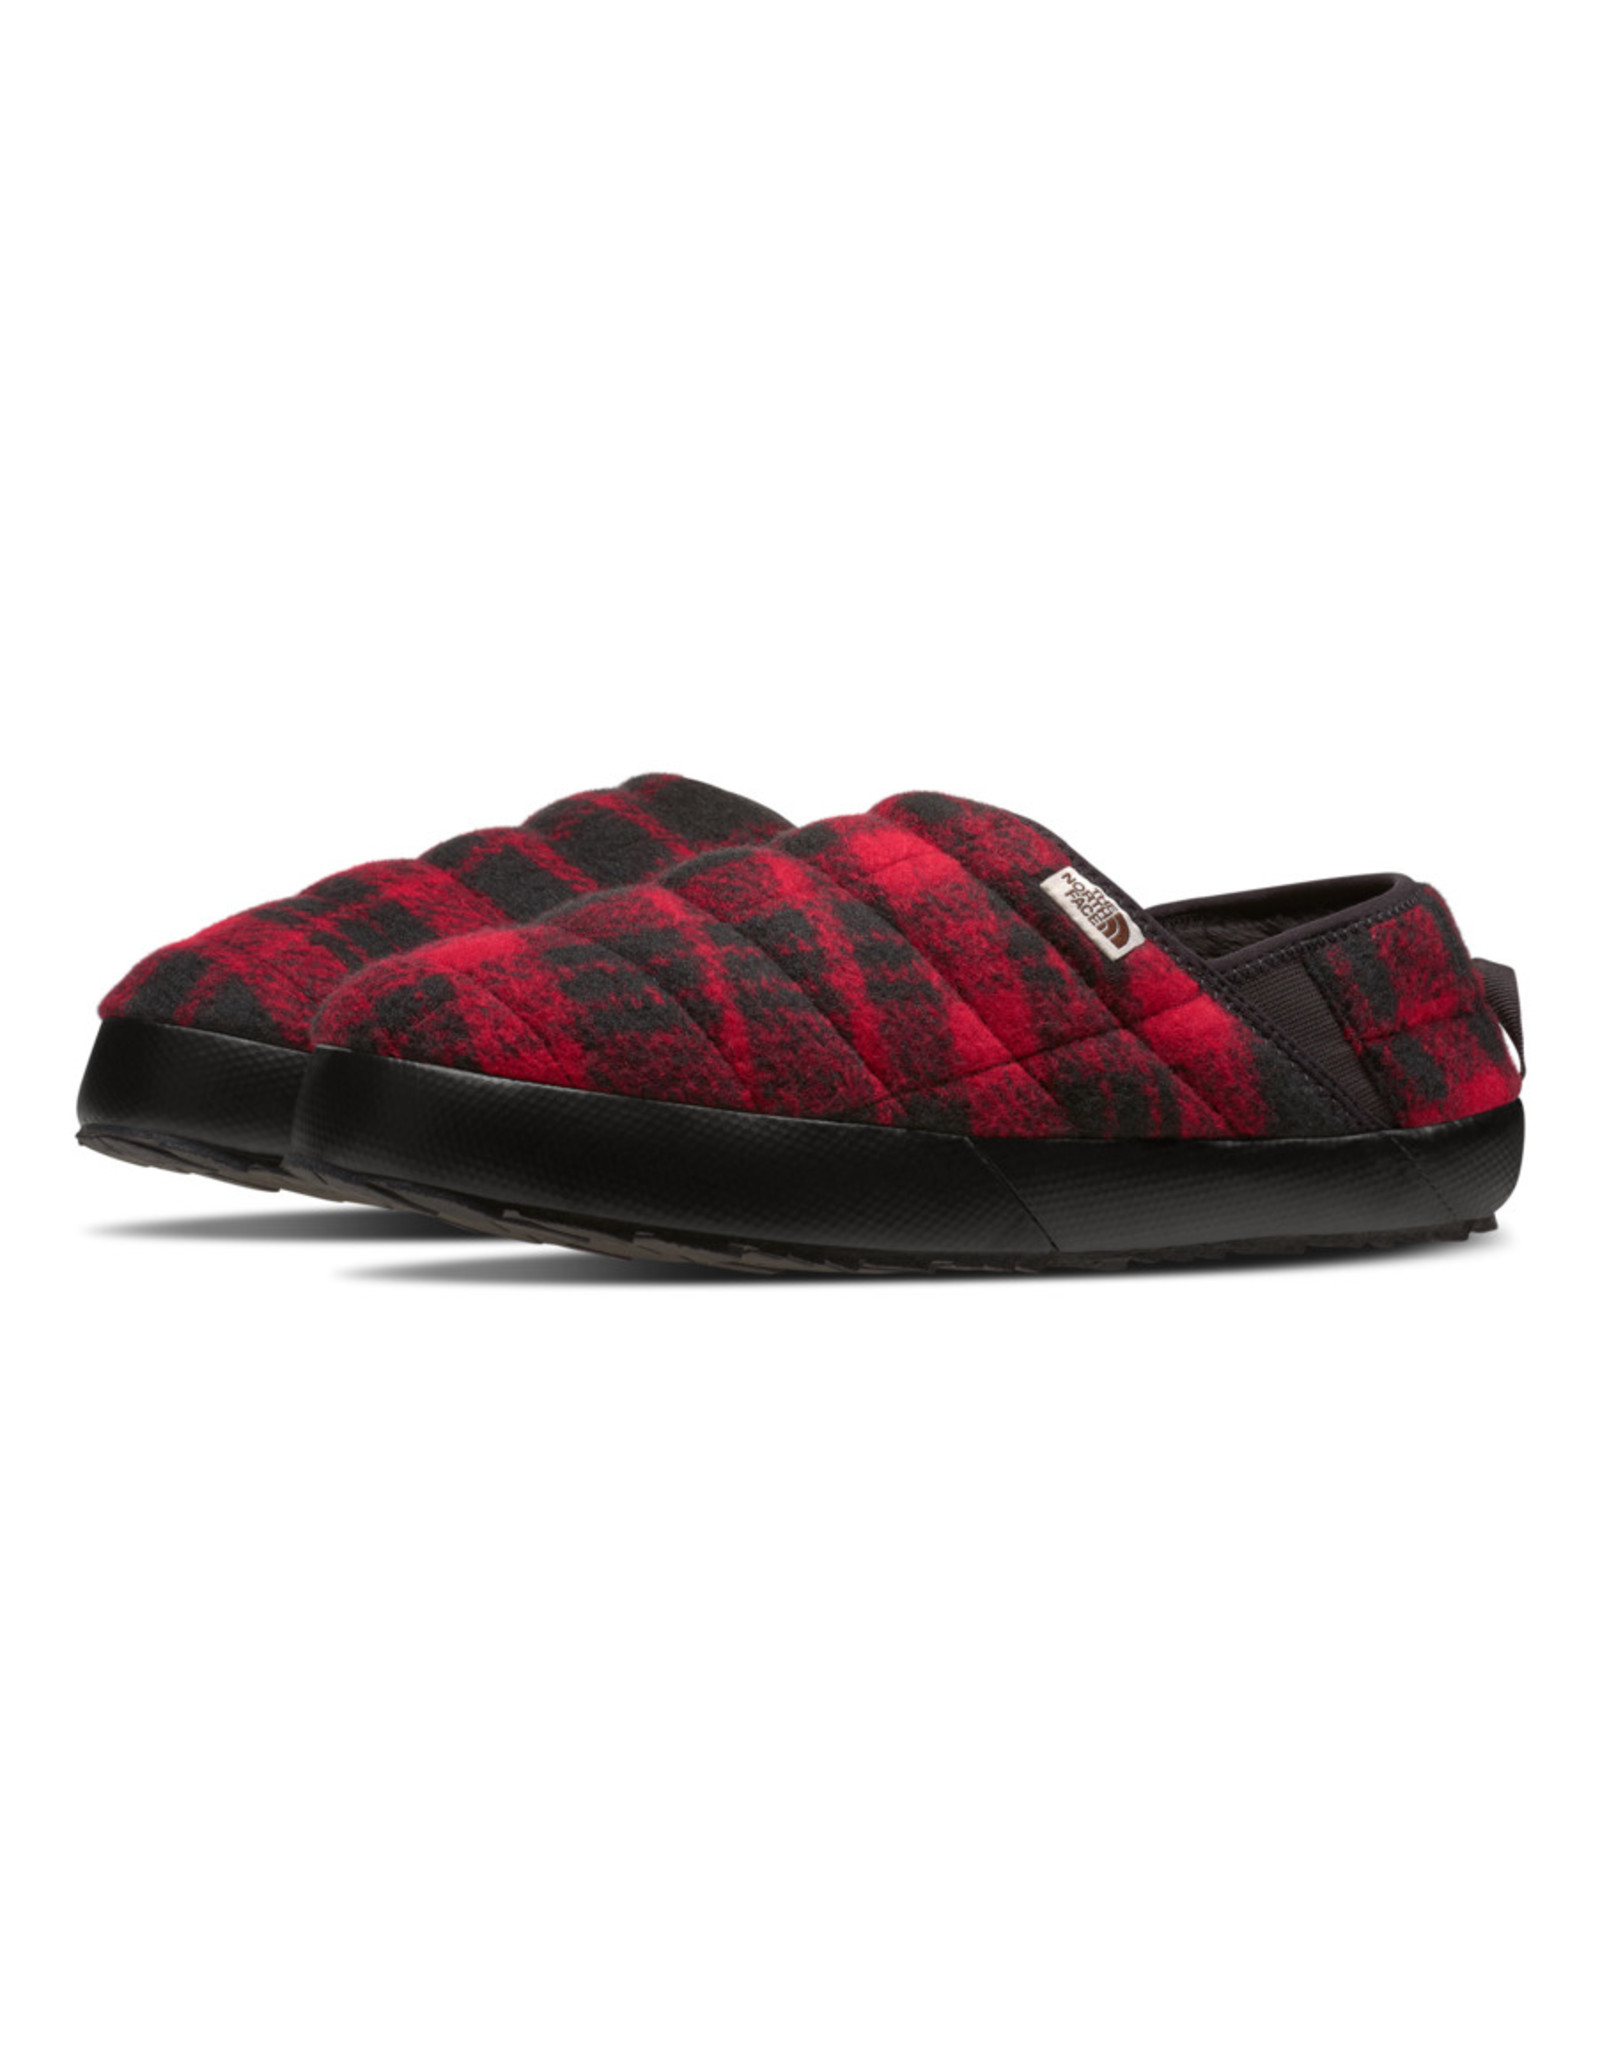 The North Face The North Face Men's Thermoball Traction Mule V Wool